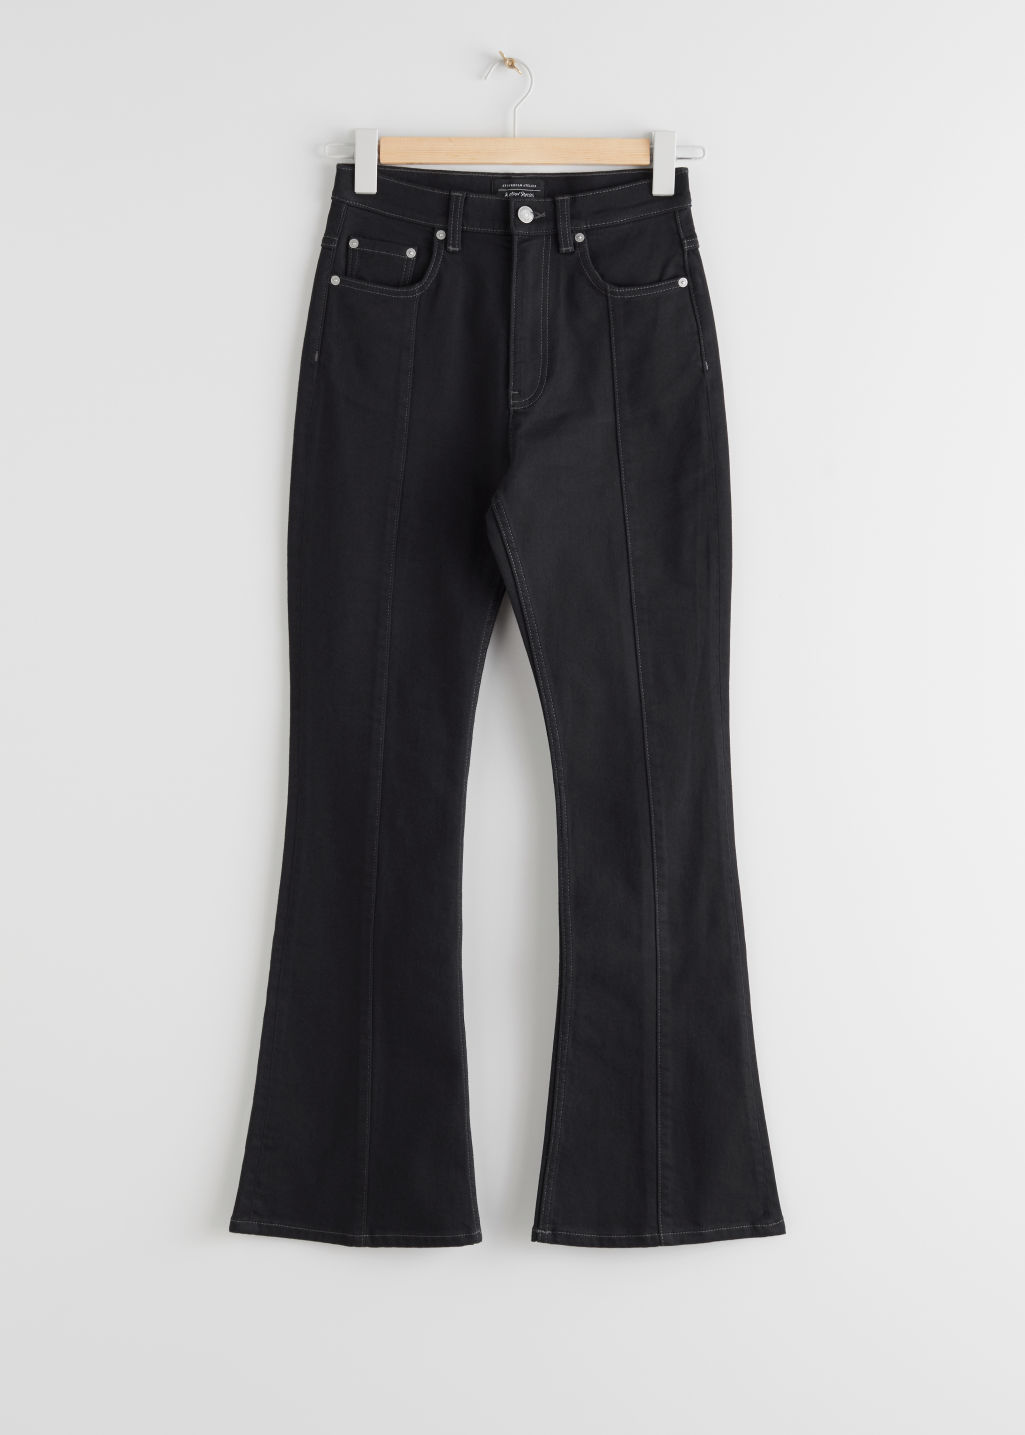 StillLife Front Image of Stories High Rise Flared Jeans in Black